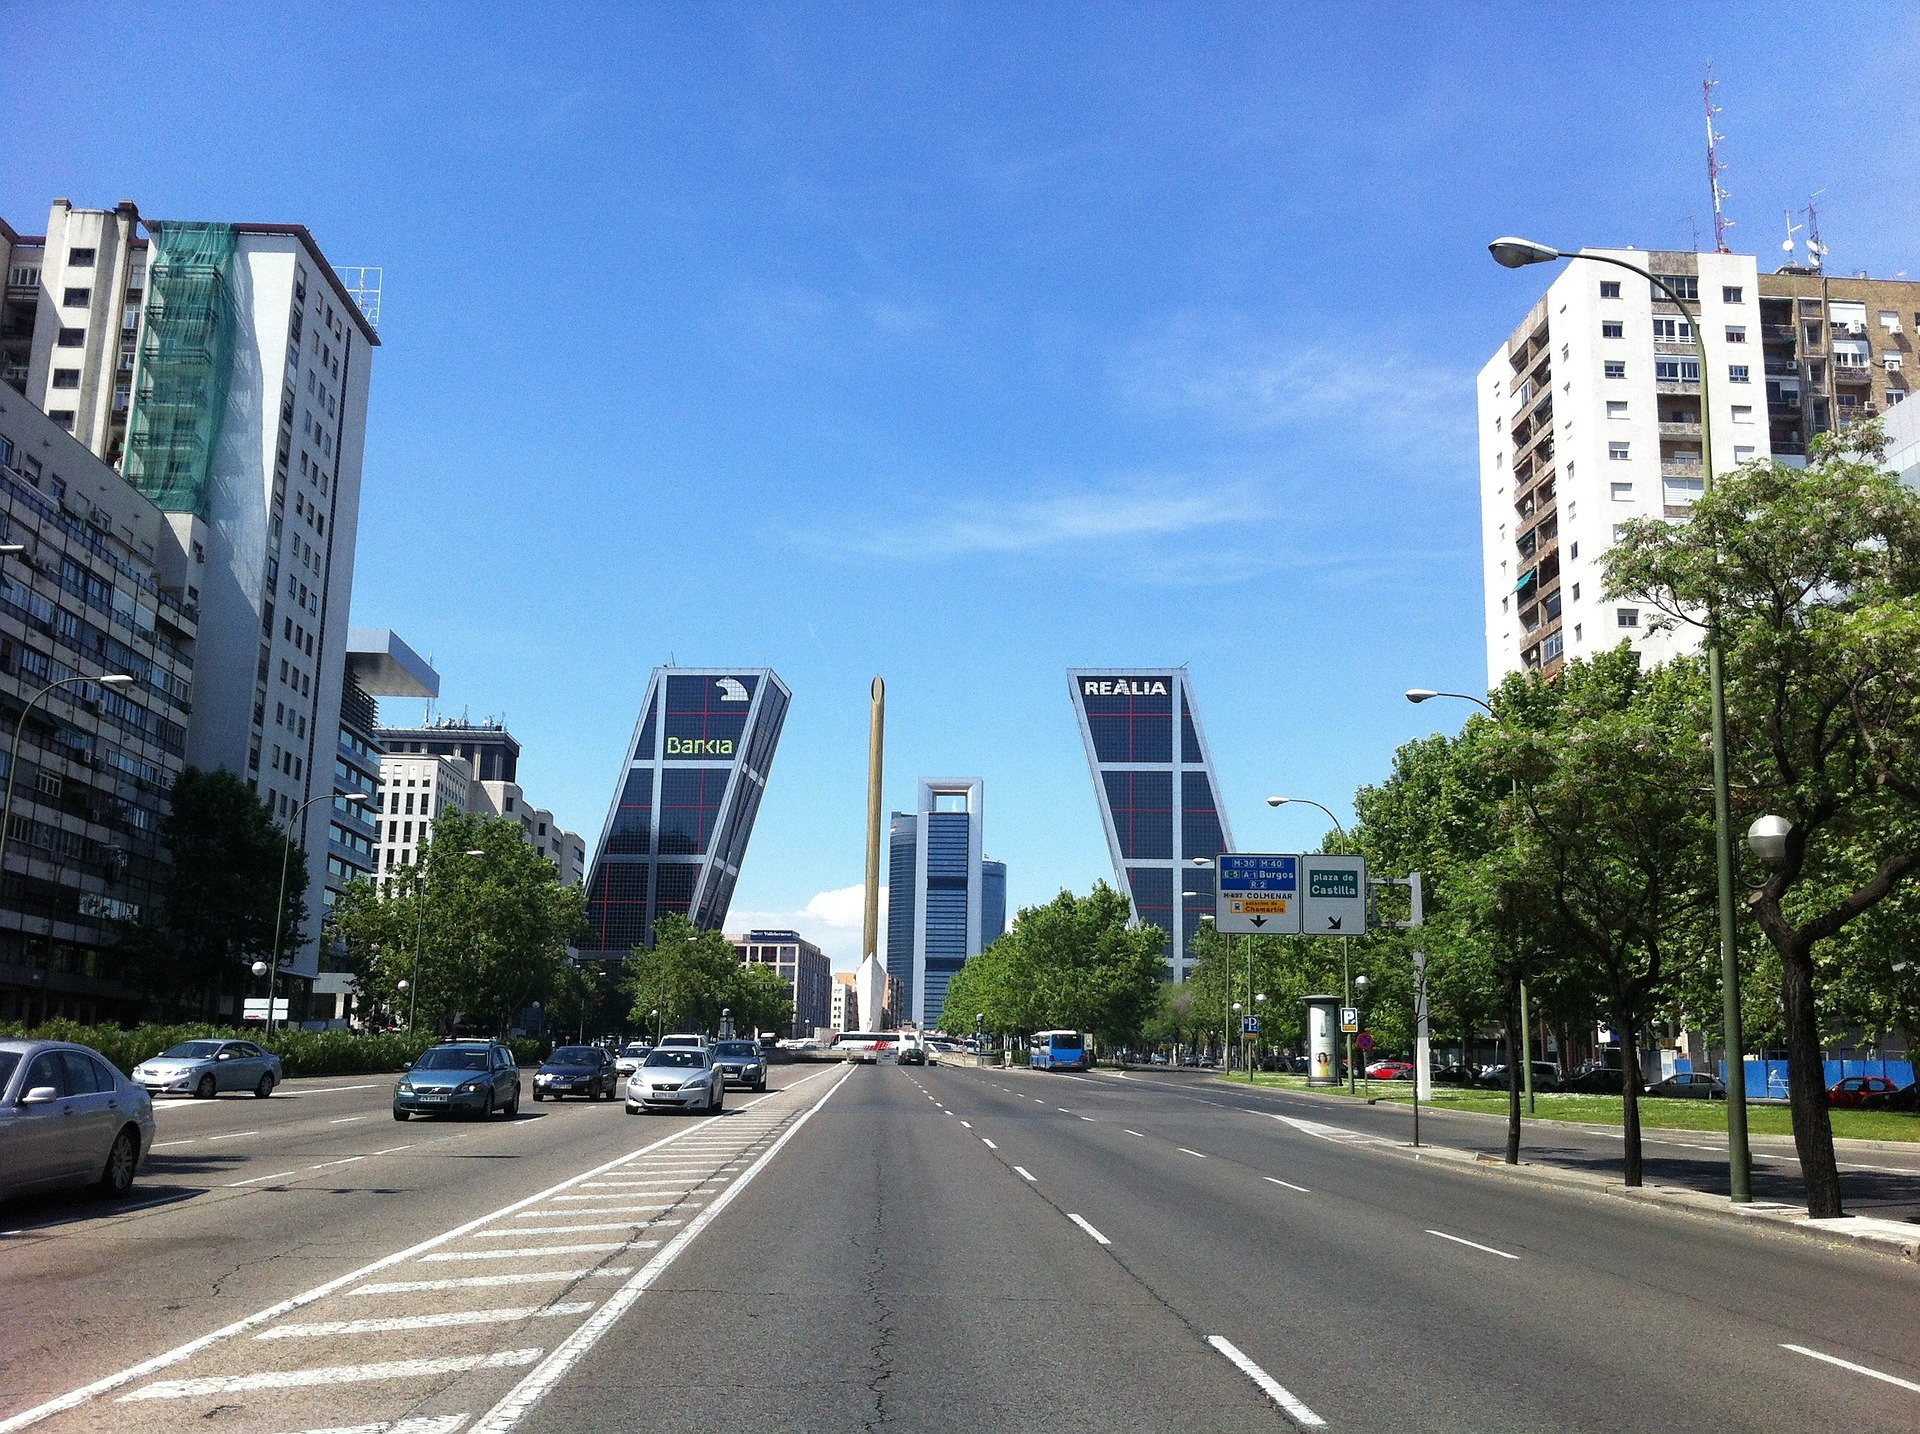 Known as 'The Gate of Europe' the two leaning bank office towers at Plaza de Castilla, Madrid, Spain